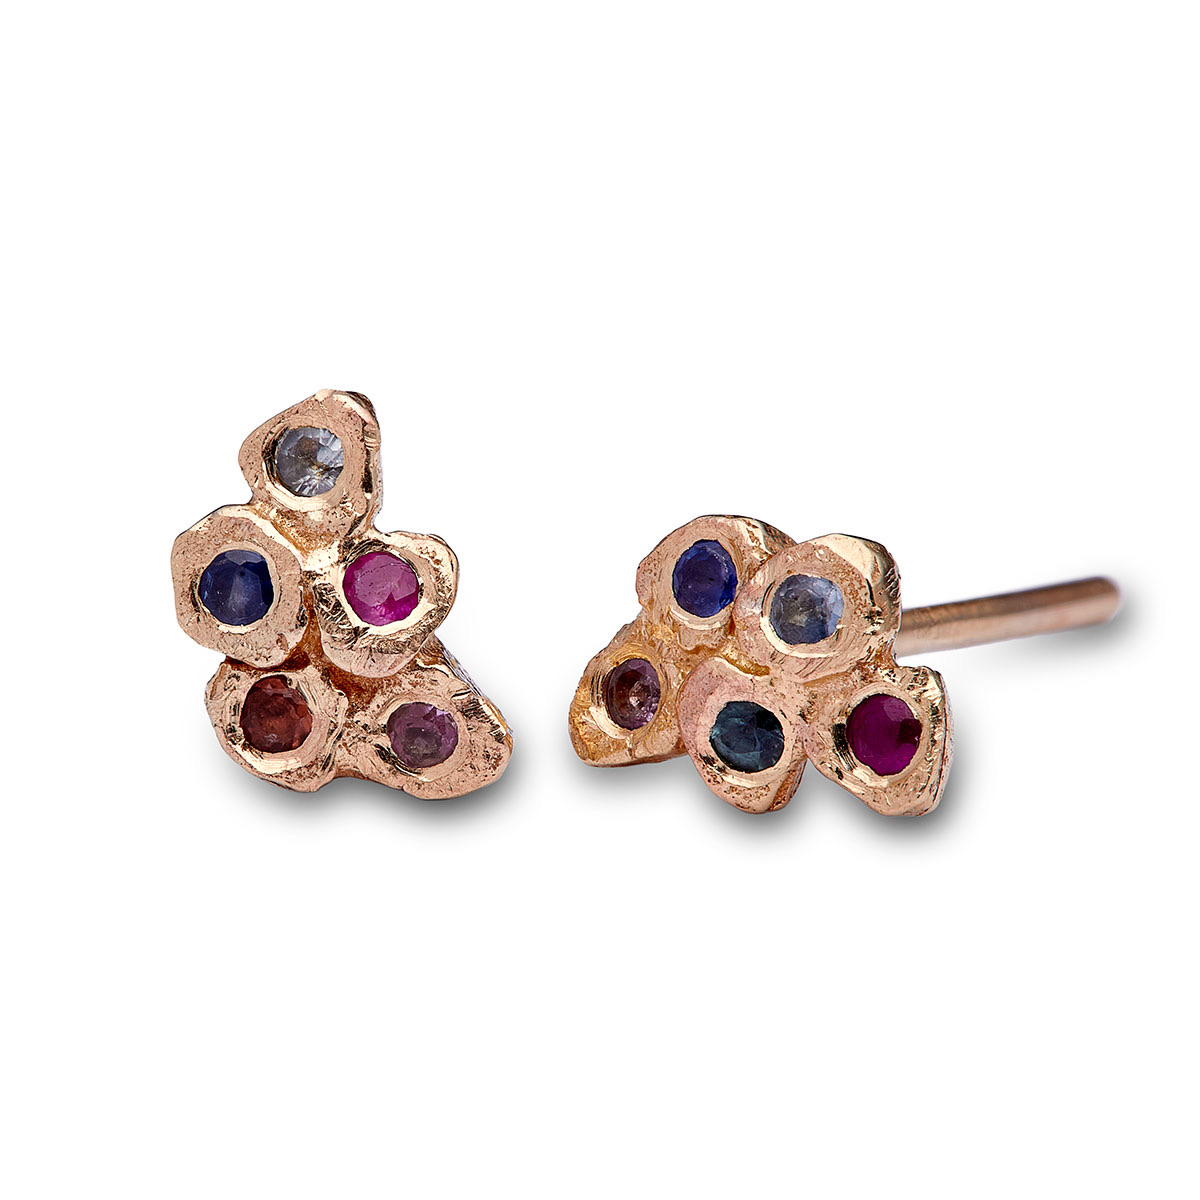 Mosaic stud earrings, 9ct yellow gold, sapphires